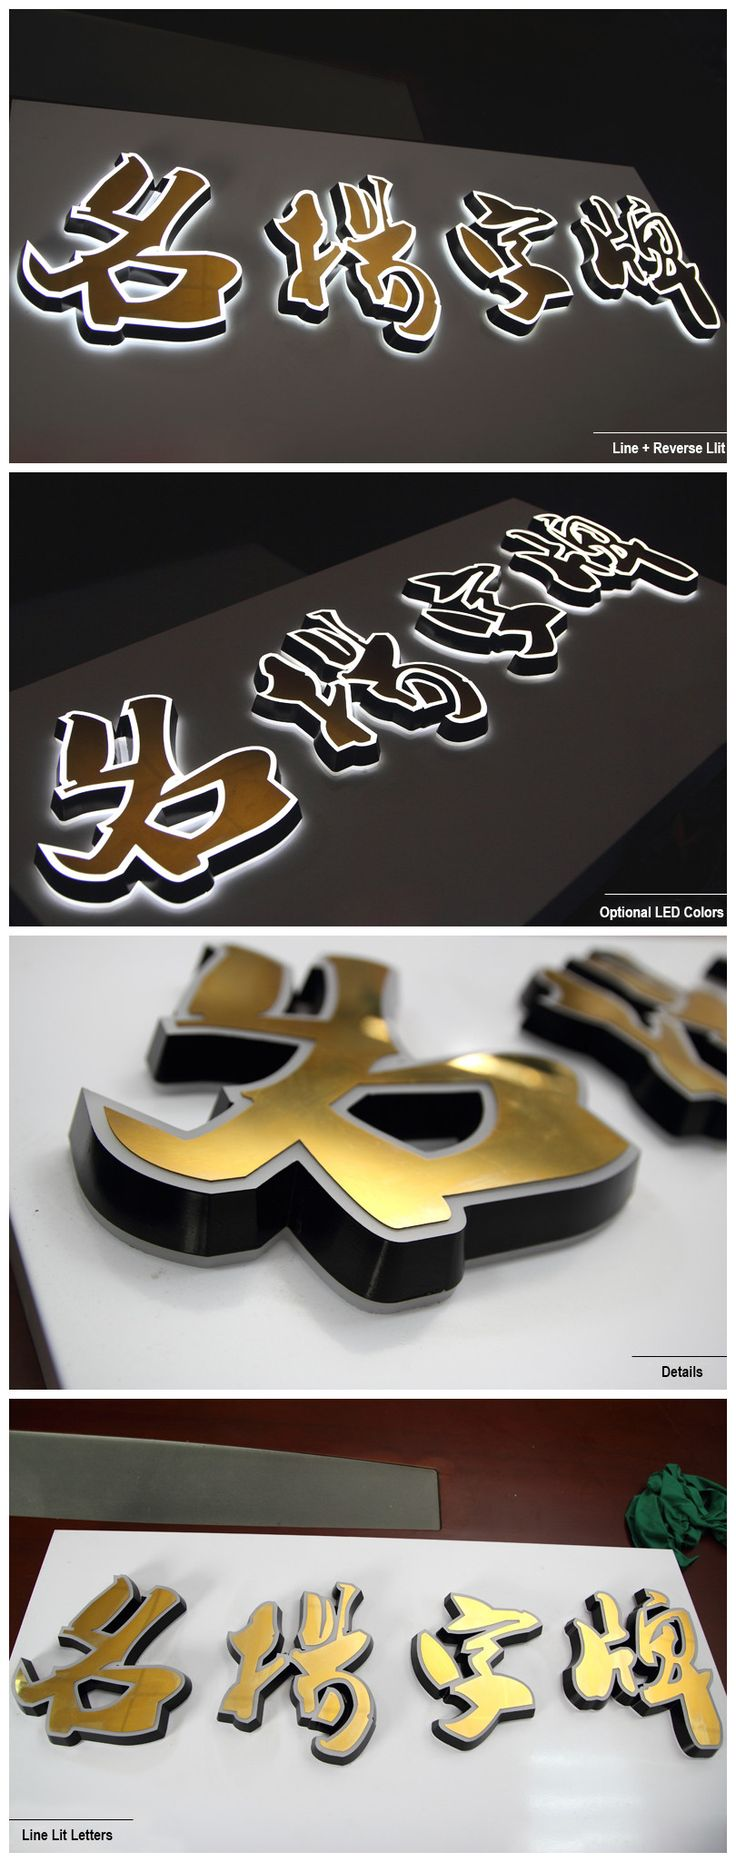 Line Lit Resin LED Letter Sign Premier Finish